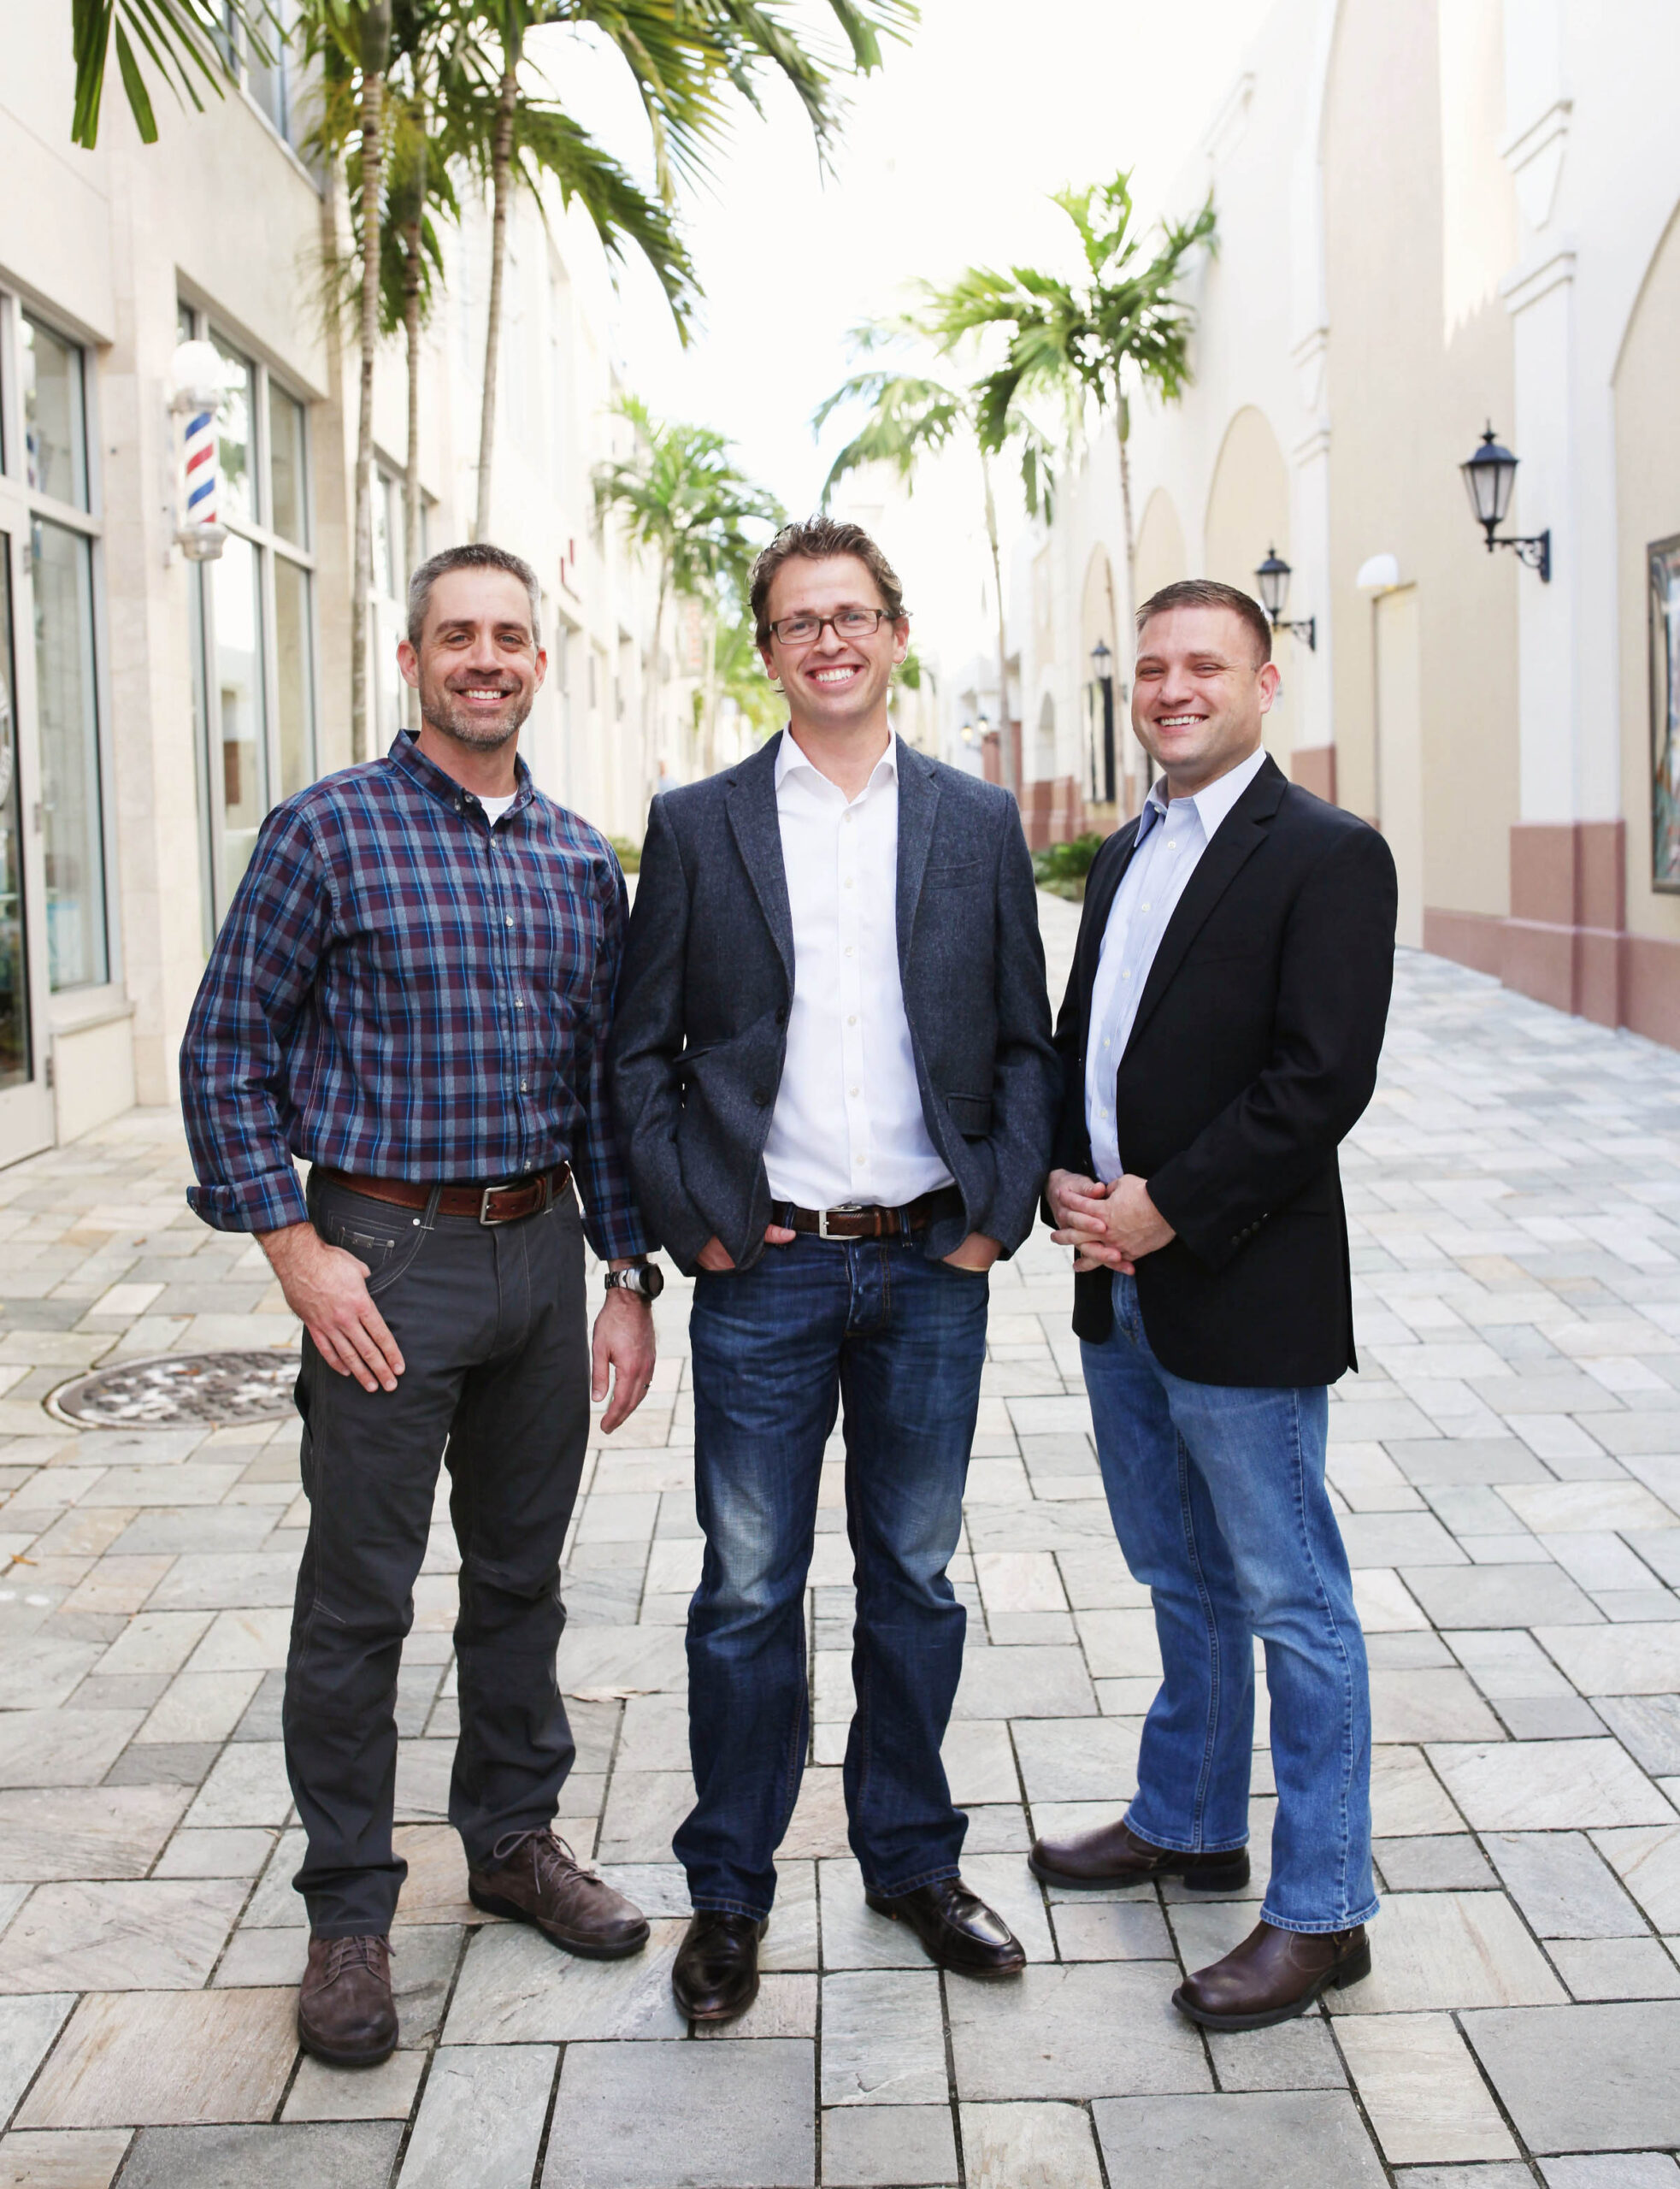 Founders of SummitET